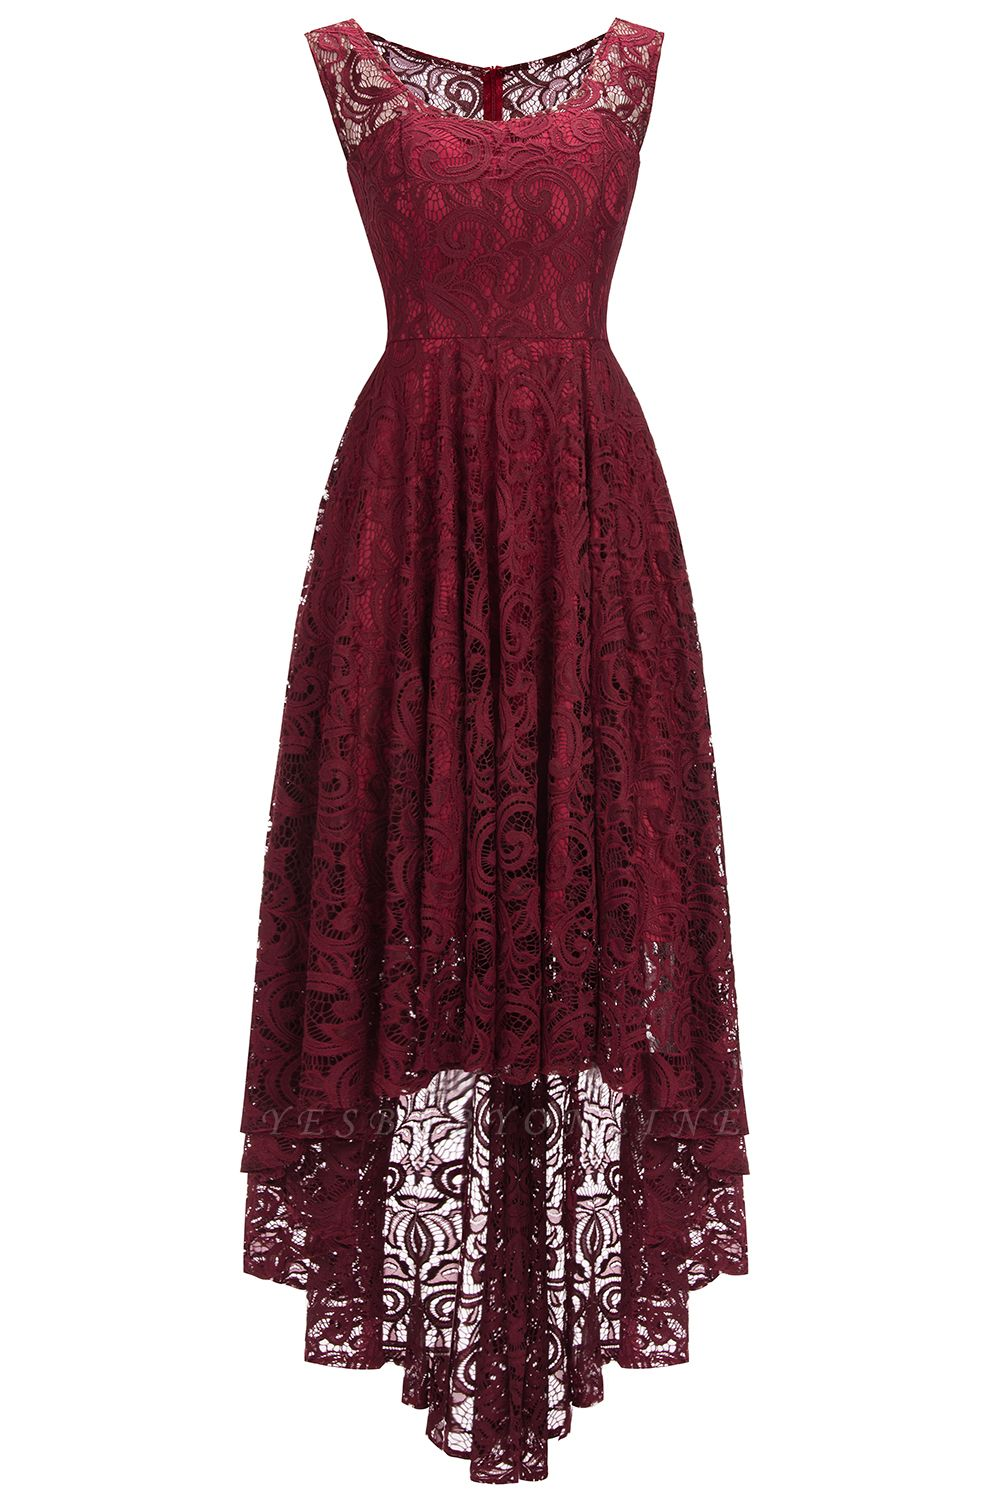 Cheap Beautiful Sleeveless A-line Crew Hi-lo Lace Dress in Stock